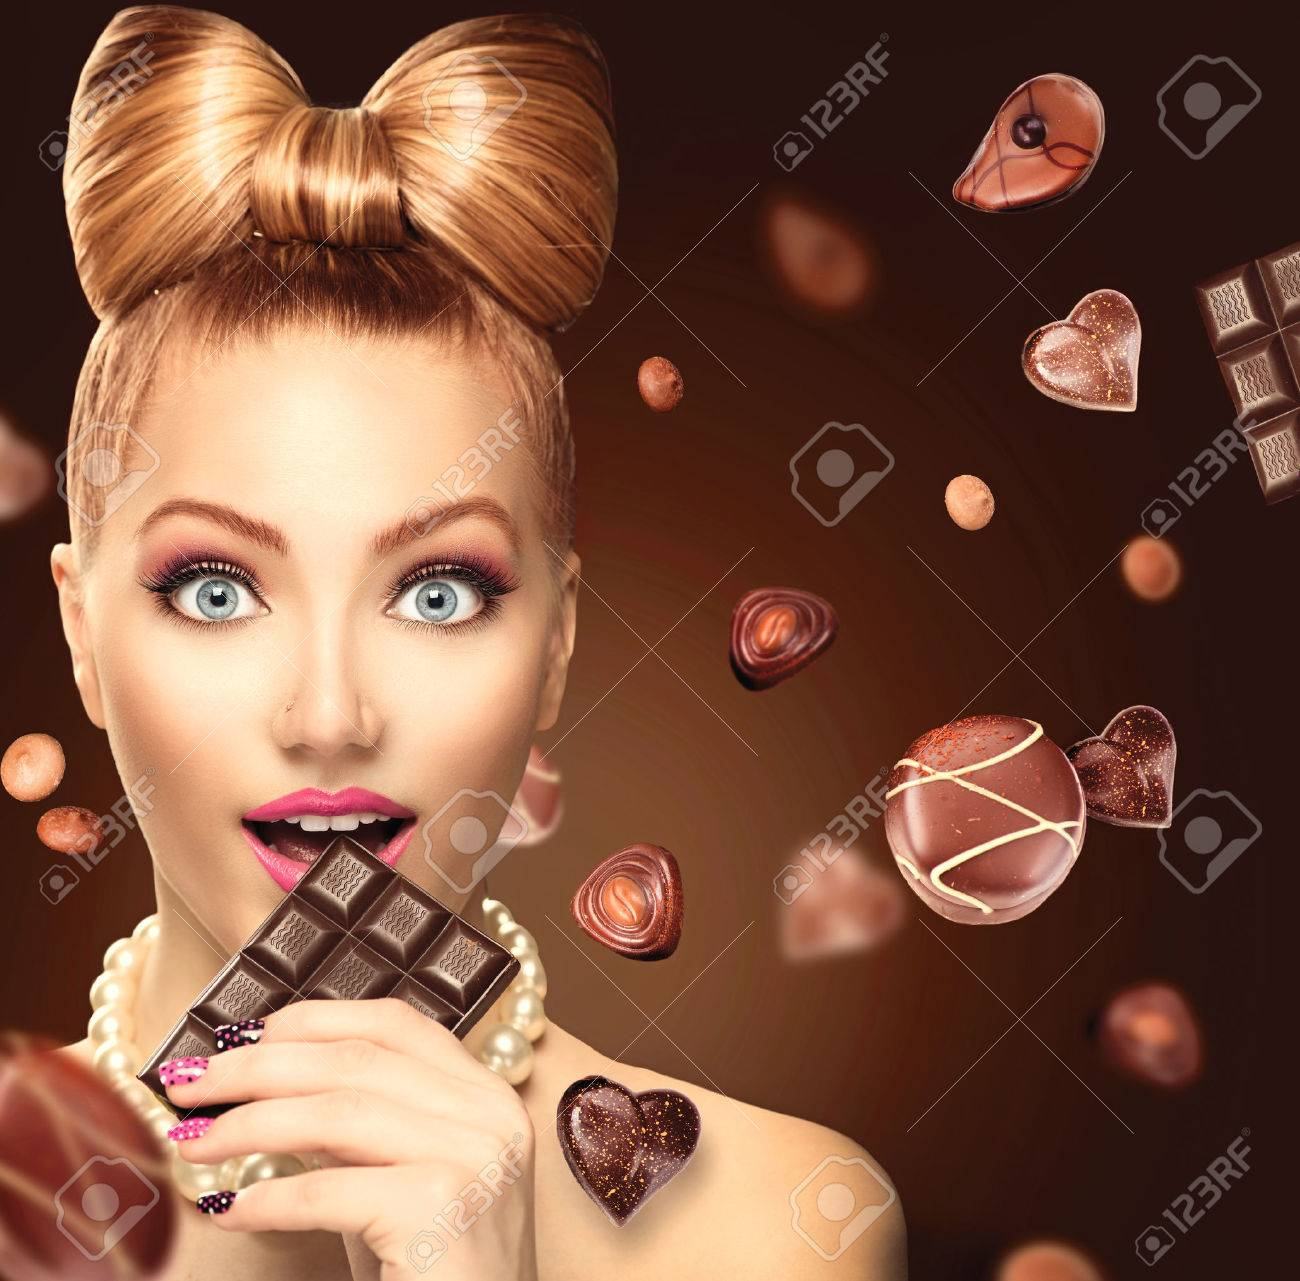 Beauty Fashion Model Girl Eating Chocolate Stock Photo, Picture ...